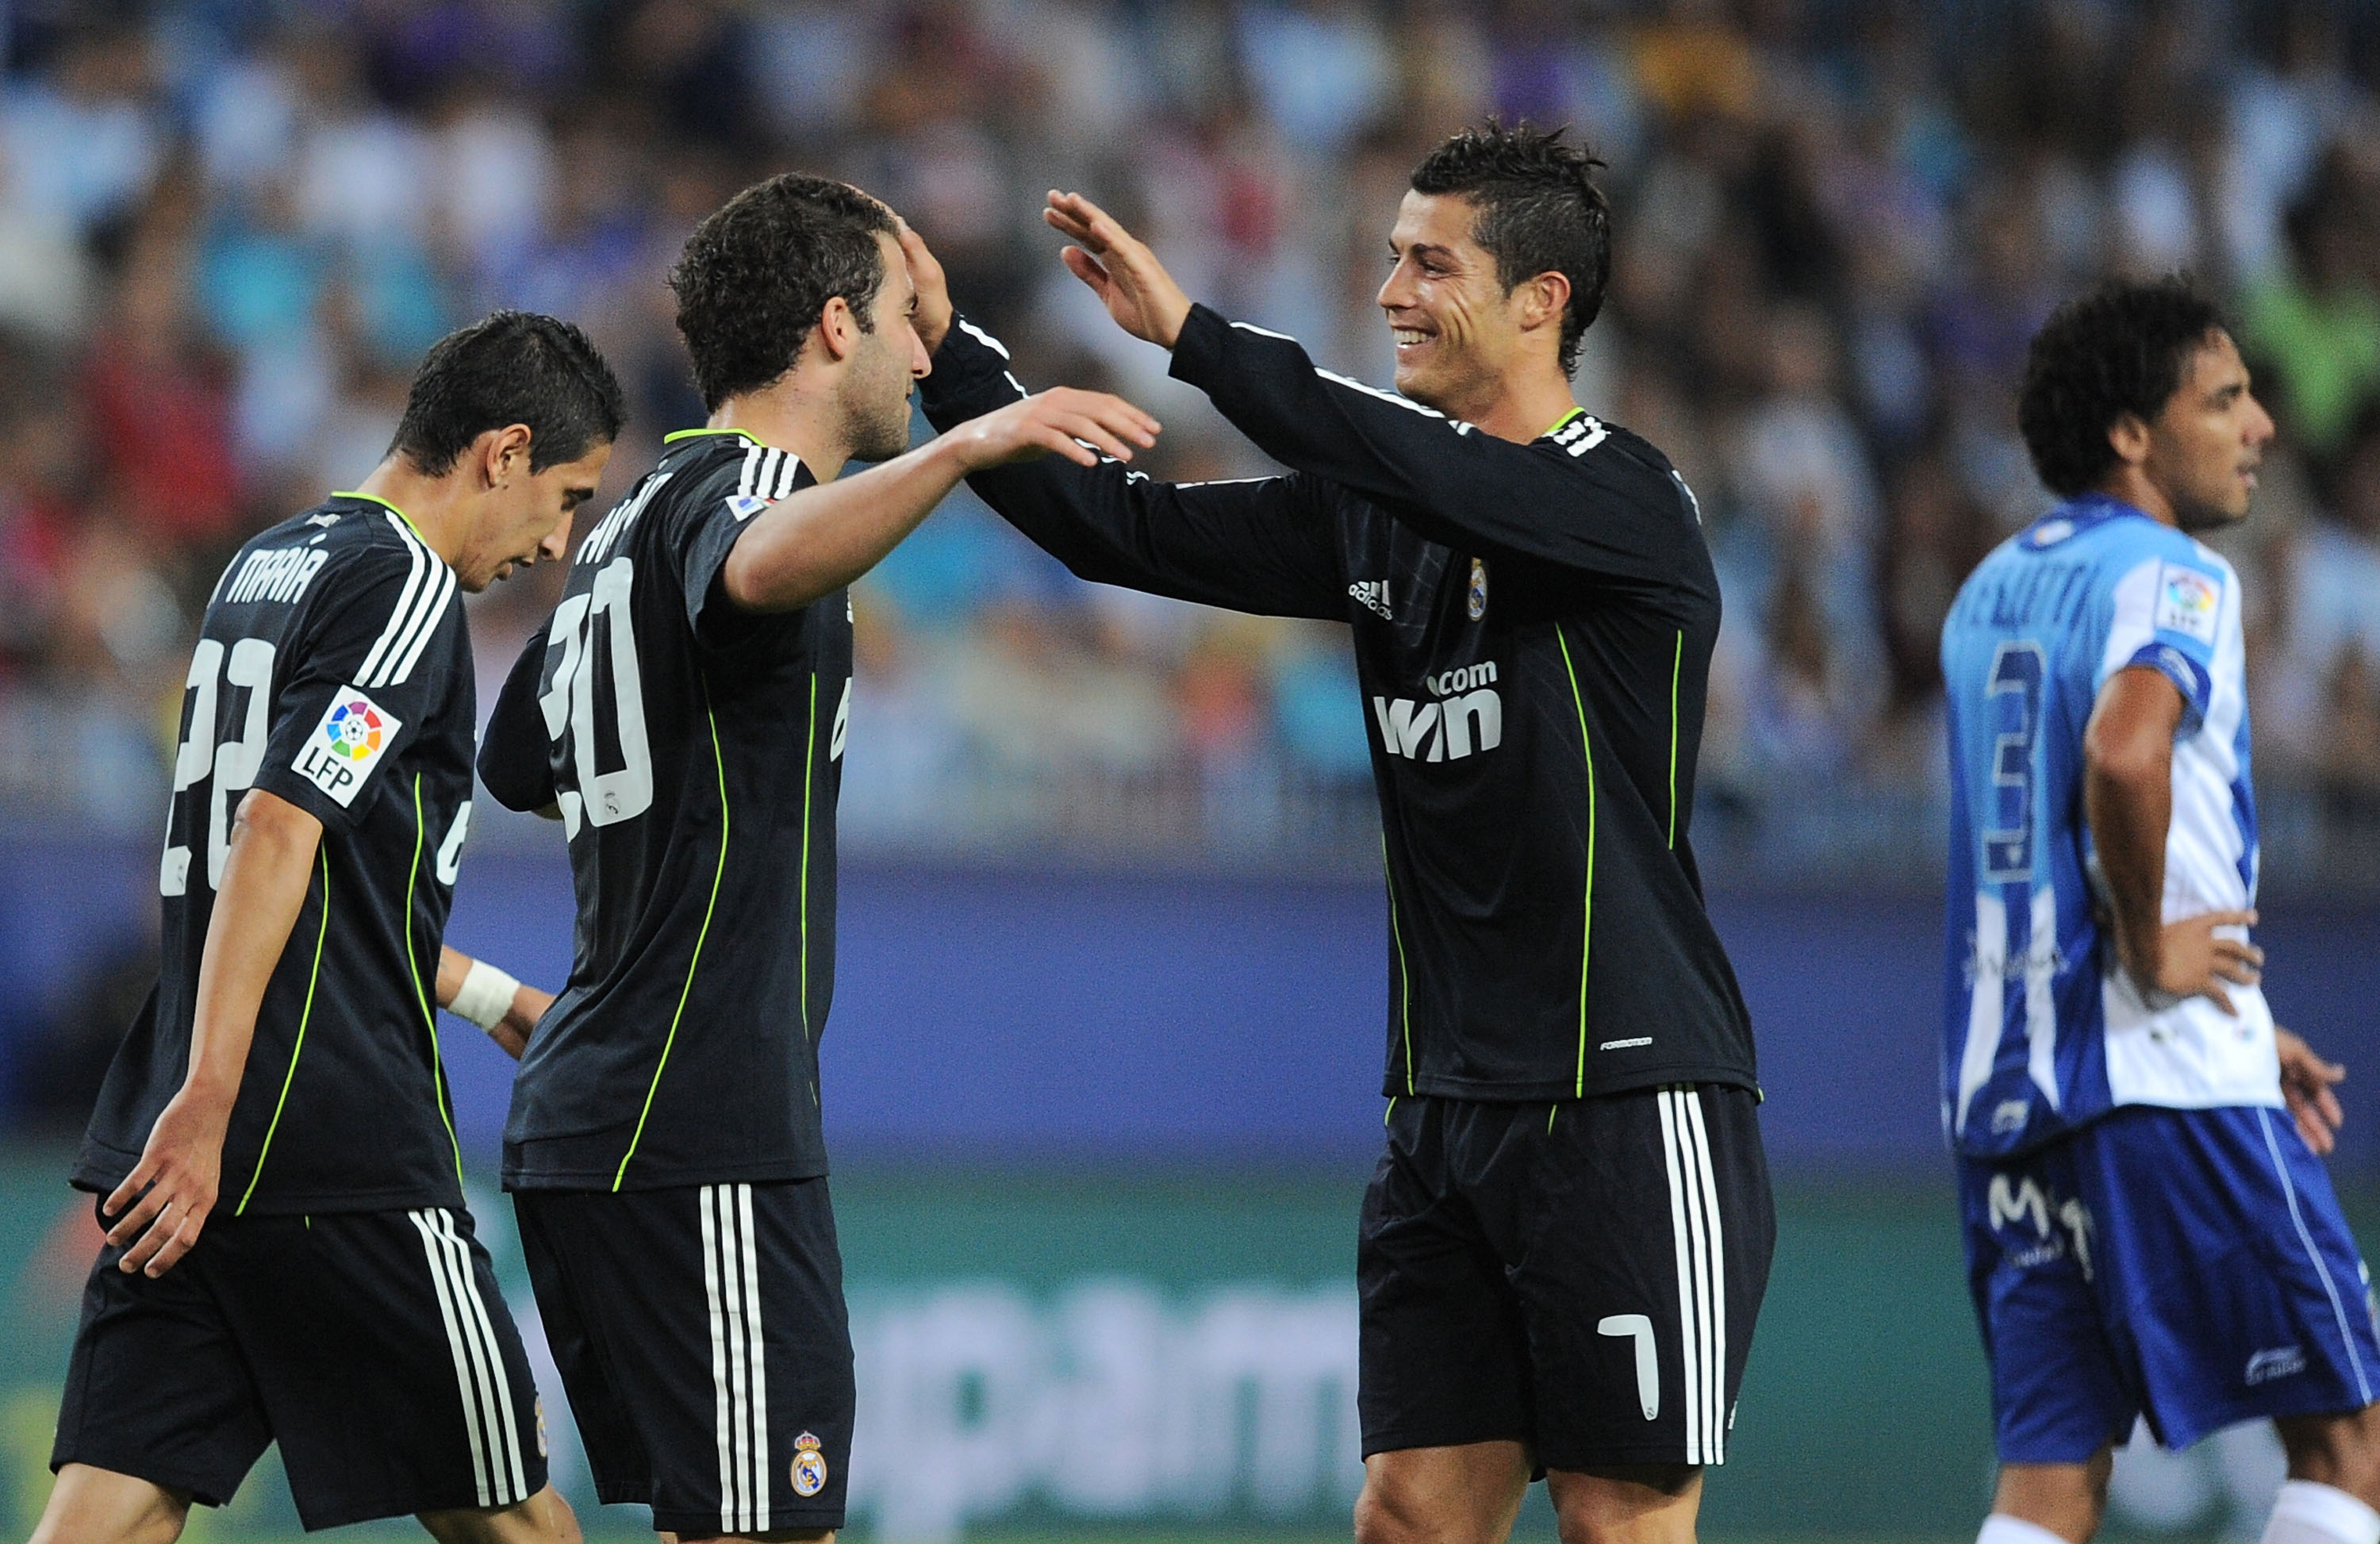 MALAGA, SPAIN - OCTOBER 16:  Cristiano Ronaldo (R) of Real Madrid celebrates with Gonzalo Higuain after Higuain scored Real's first goal during the La Liga match between Malaga and Real Madrid at La Rosaleda Stadium on October 16, 2010 in Malaga, Spain.